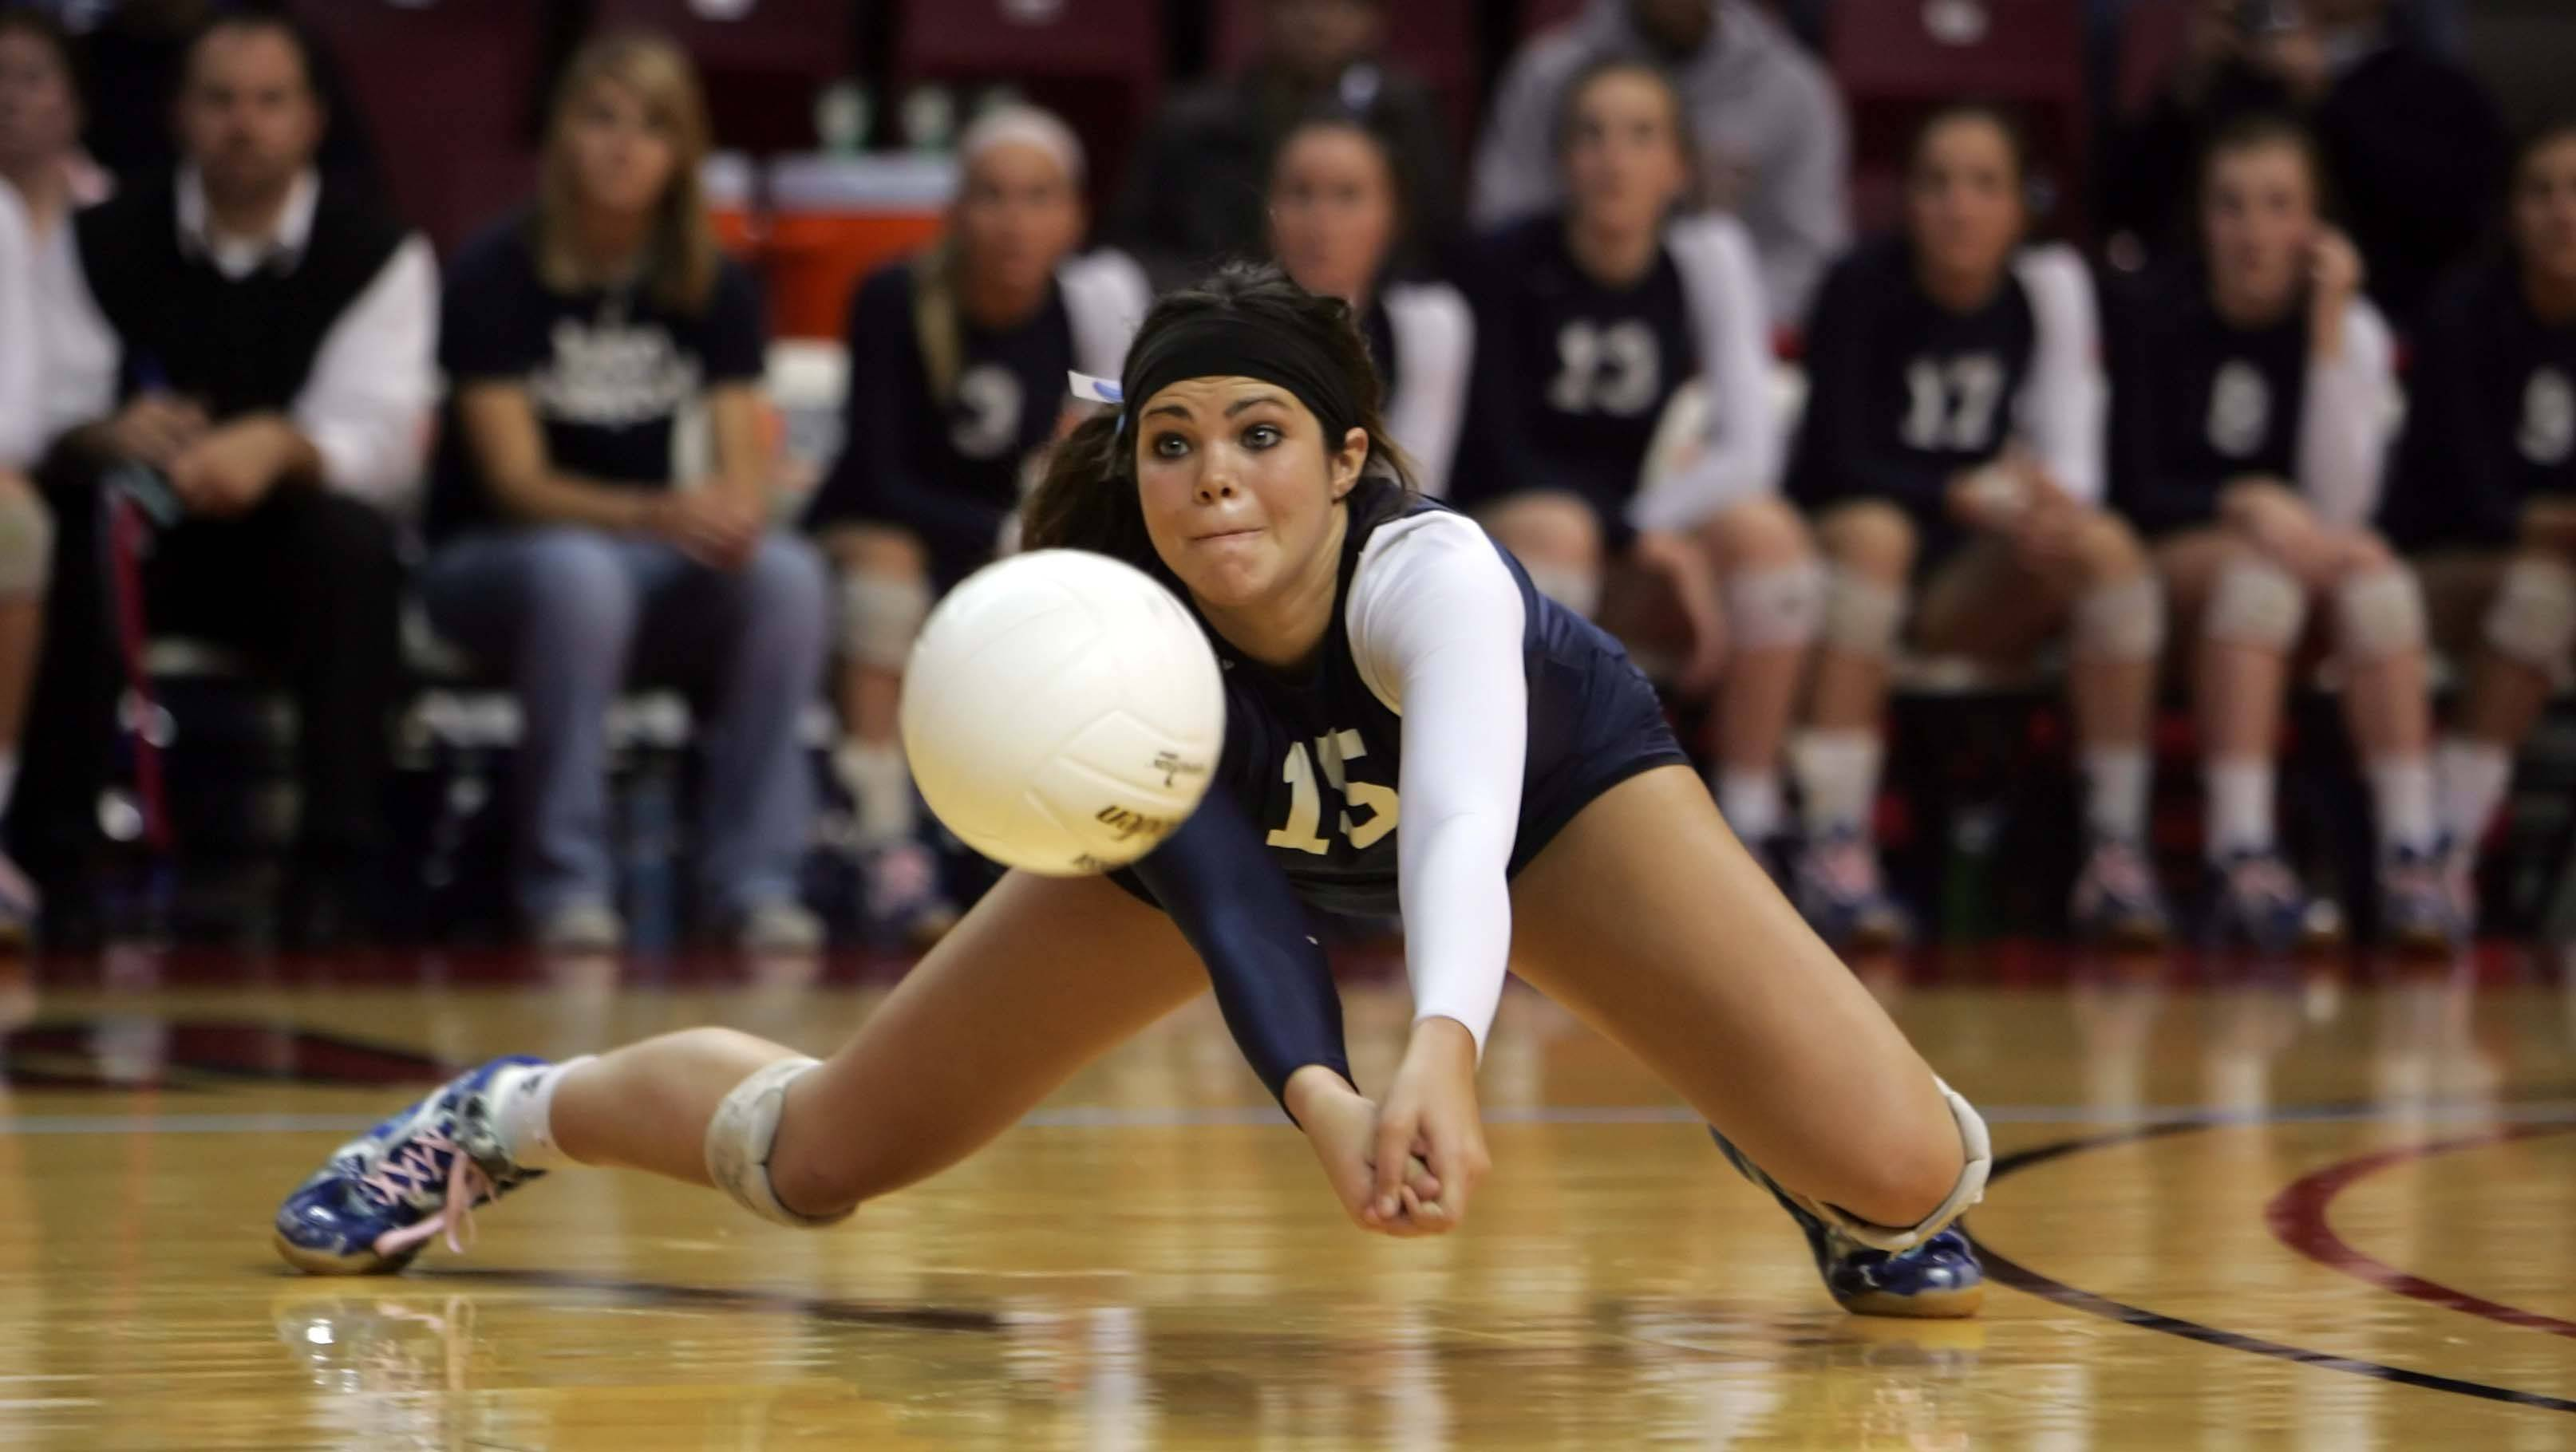 Cary-Grove setter Colleen Smith, 15, pulls out a dig against Lyons in the IHSA Class 4A State championship match Saturday, November 13, 2010 at Redbird Arena in Normal. The Trojans lost the match in three games and finished second.